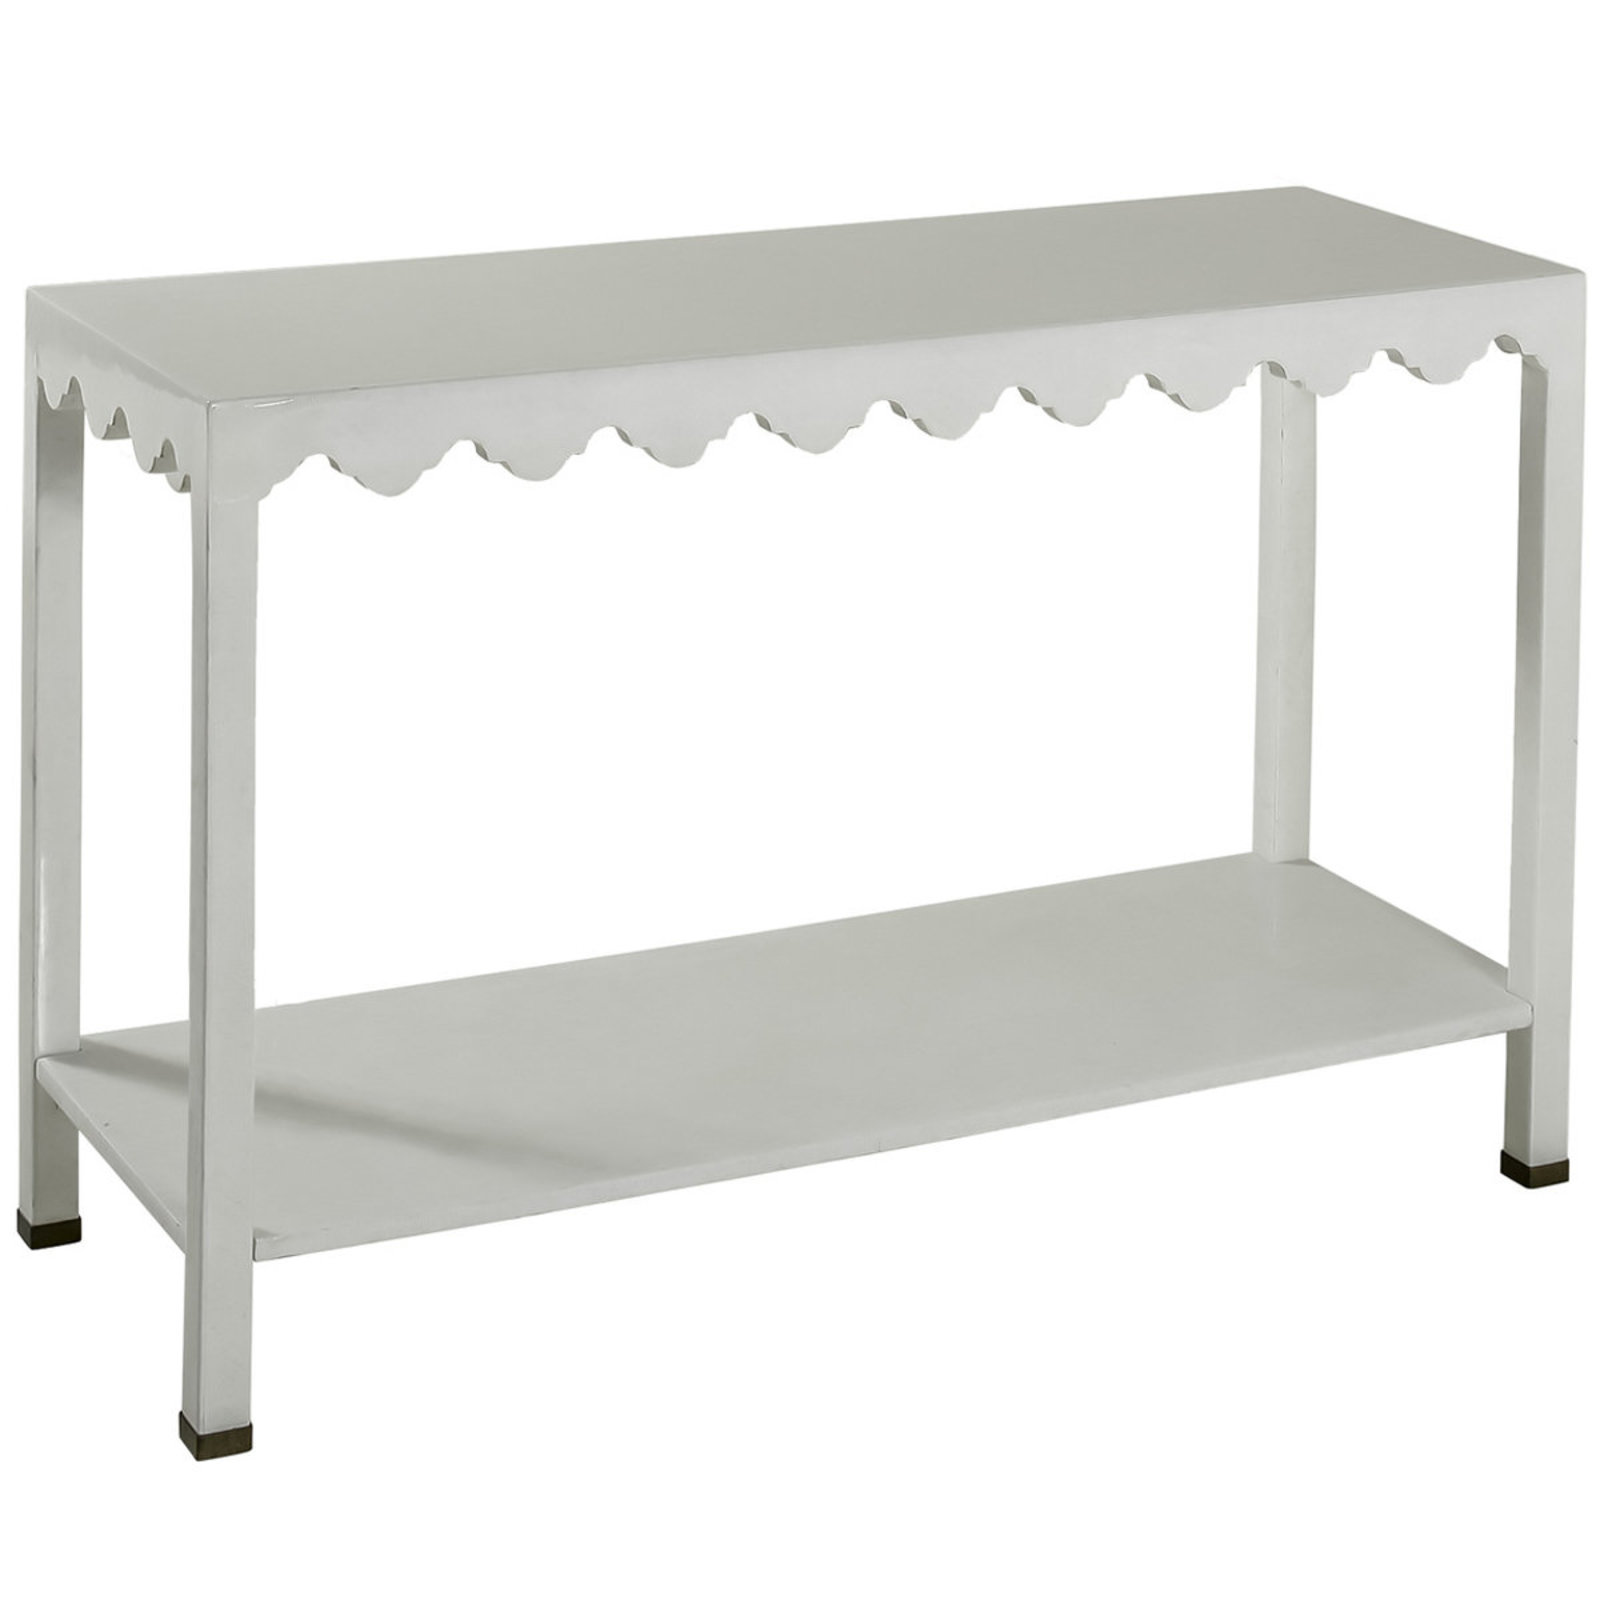 lacquered seagrass console table shades light white lacquer accent lamps living room pottery barn with usb ports and lamp wilcox furniture blue outdoor side glass cabinet knobs